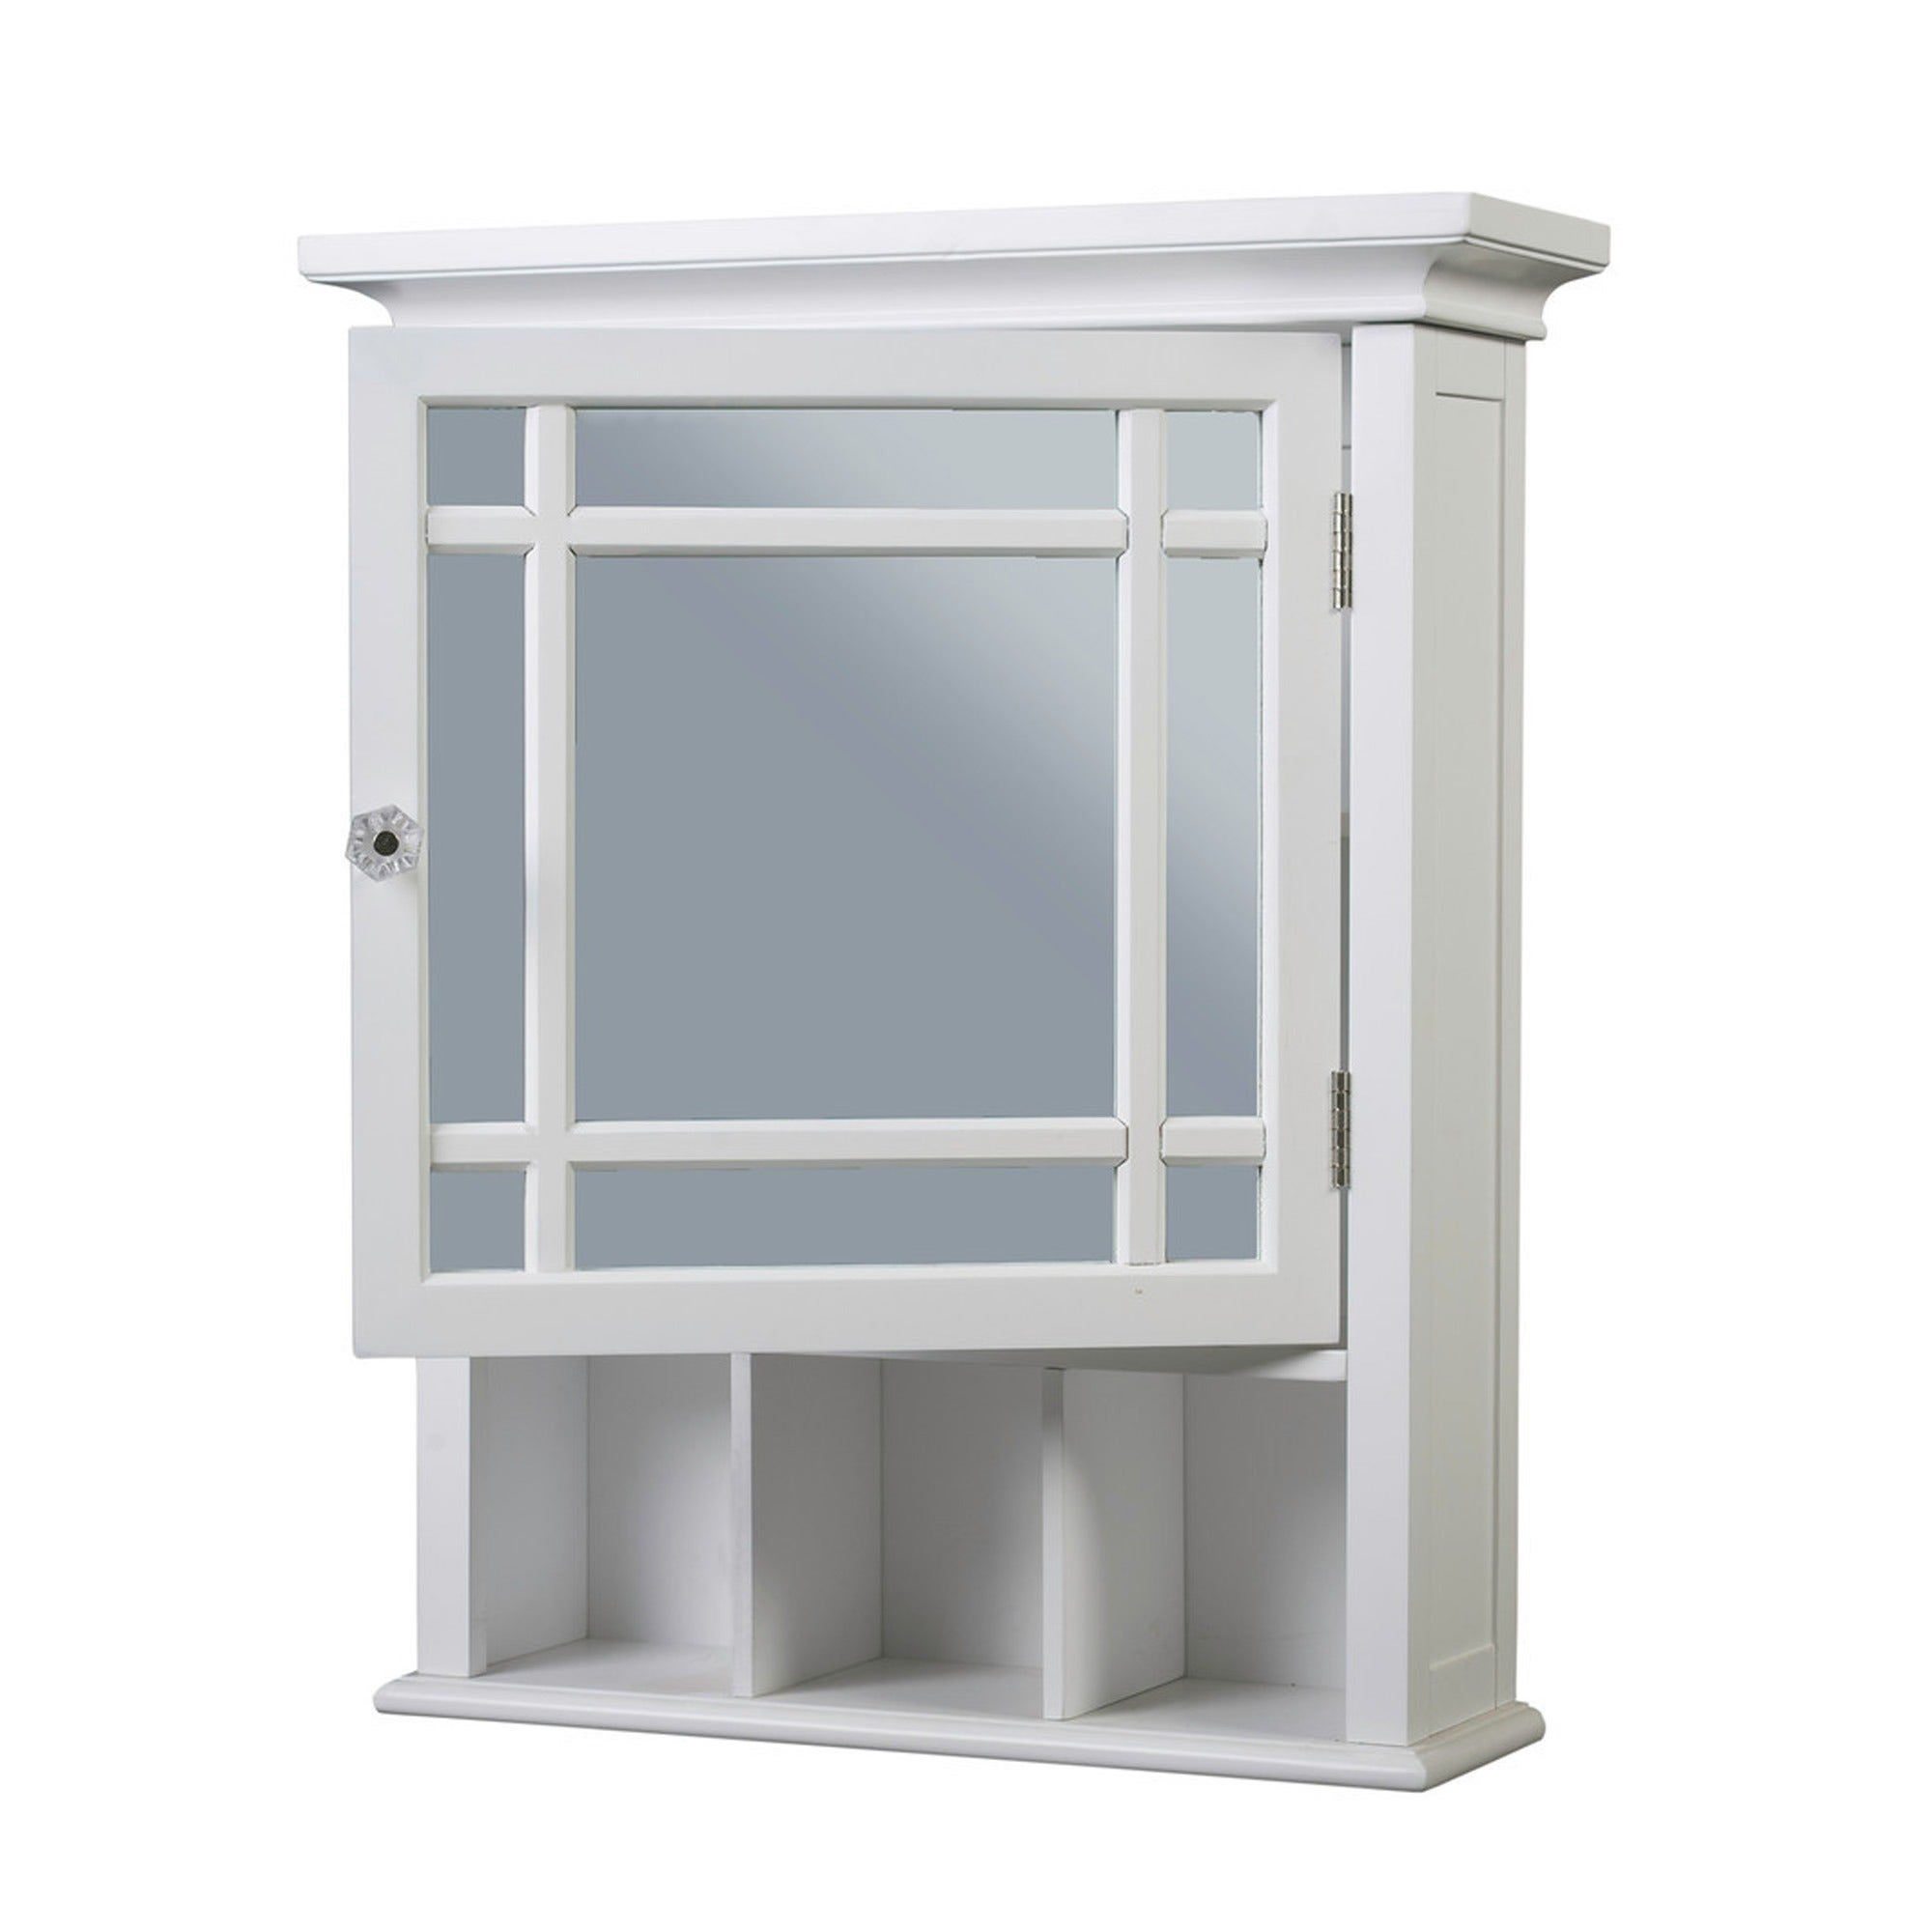 Medicine Cabinet Organizers And Storage With Glass Door White Wood ...